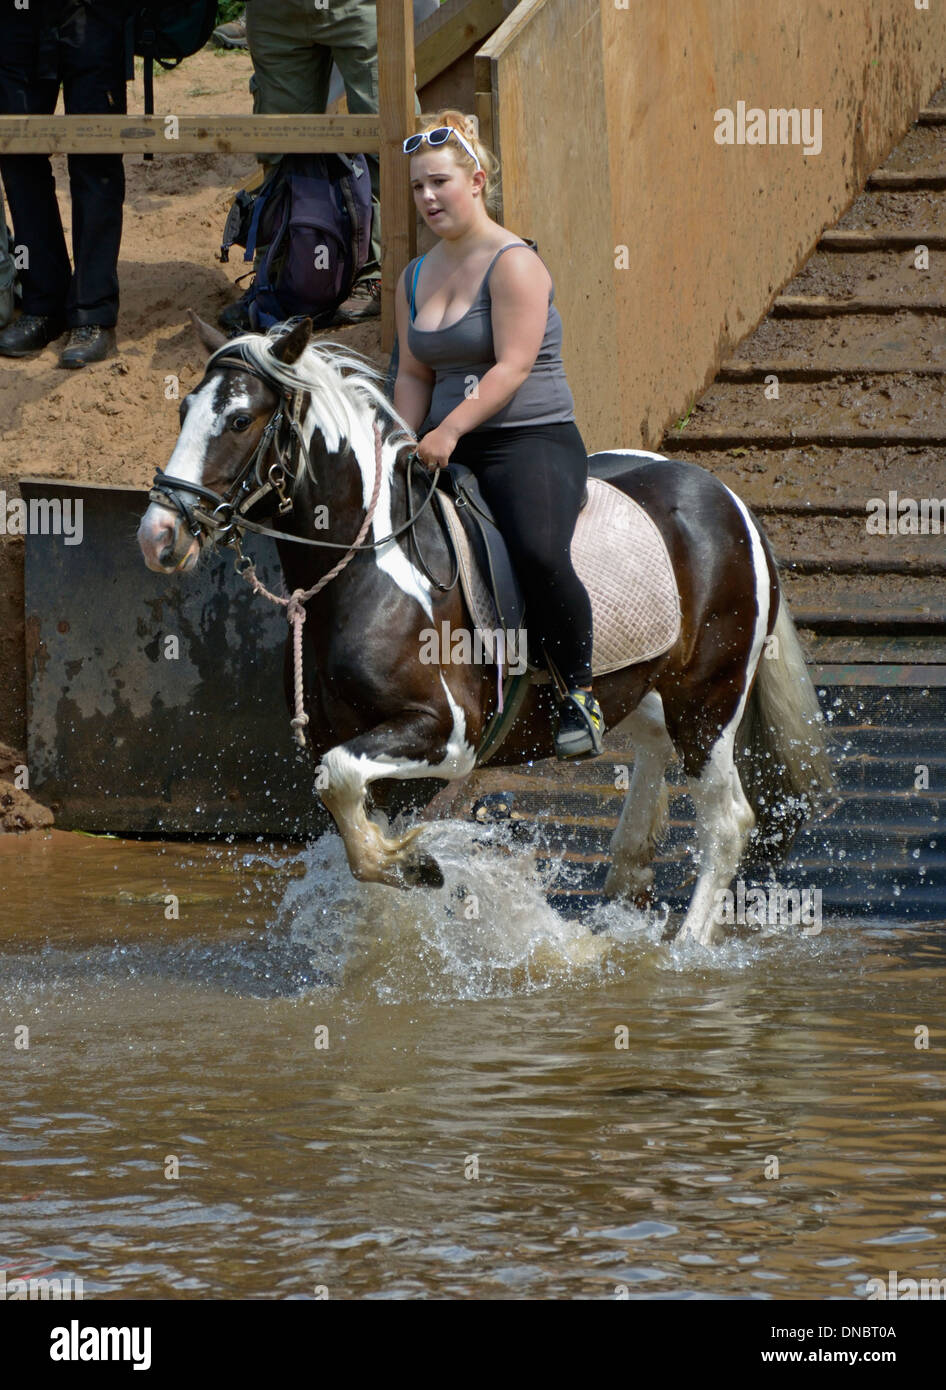 Gypsy traveller girl riding horse in River Eden. Appleby Horse Fair, Appleby-in-Westmorland, Cumbria, England, United Kingdom. - Stock Image